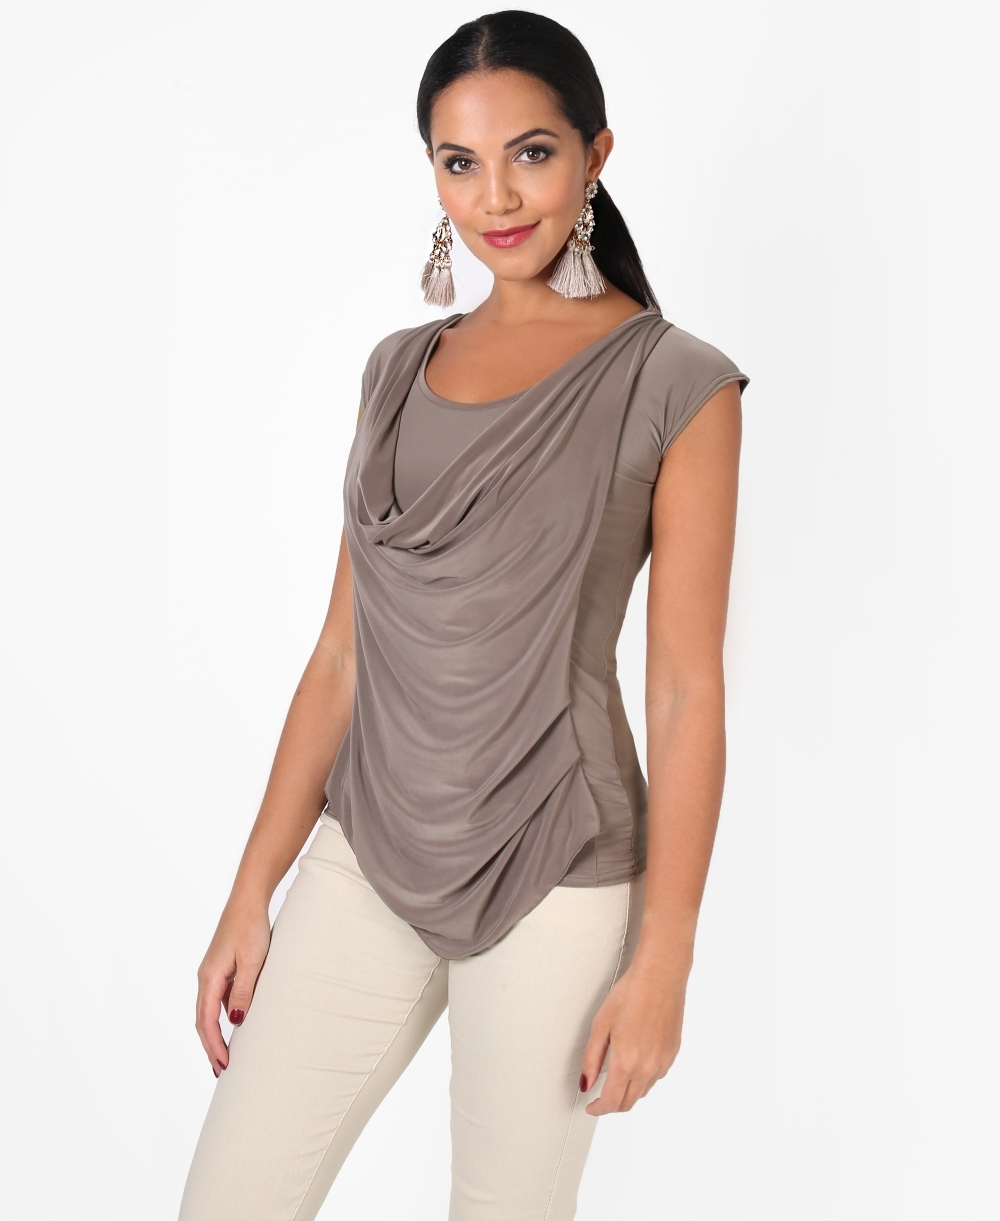 drapes tops kai top sleeveless lisa front by cashmere drape halter